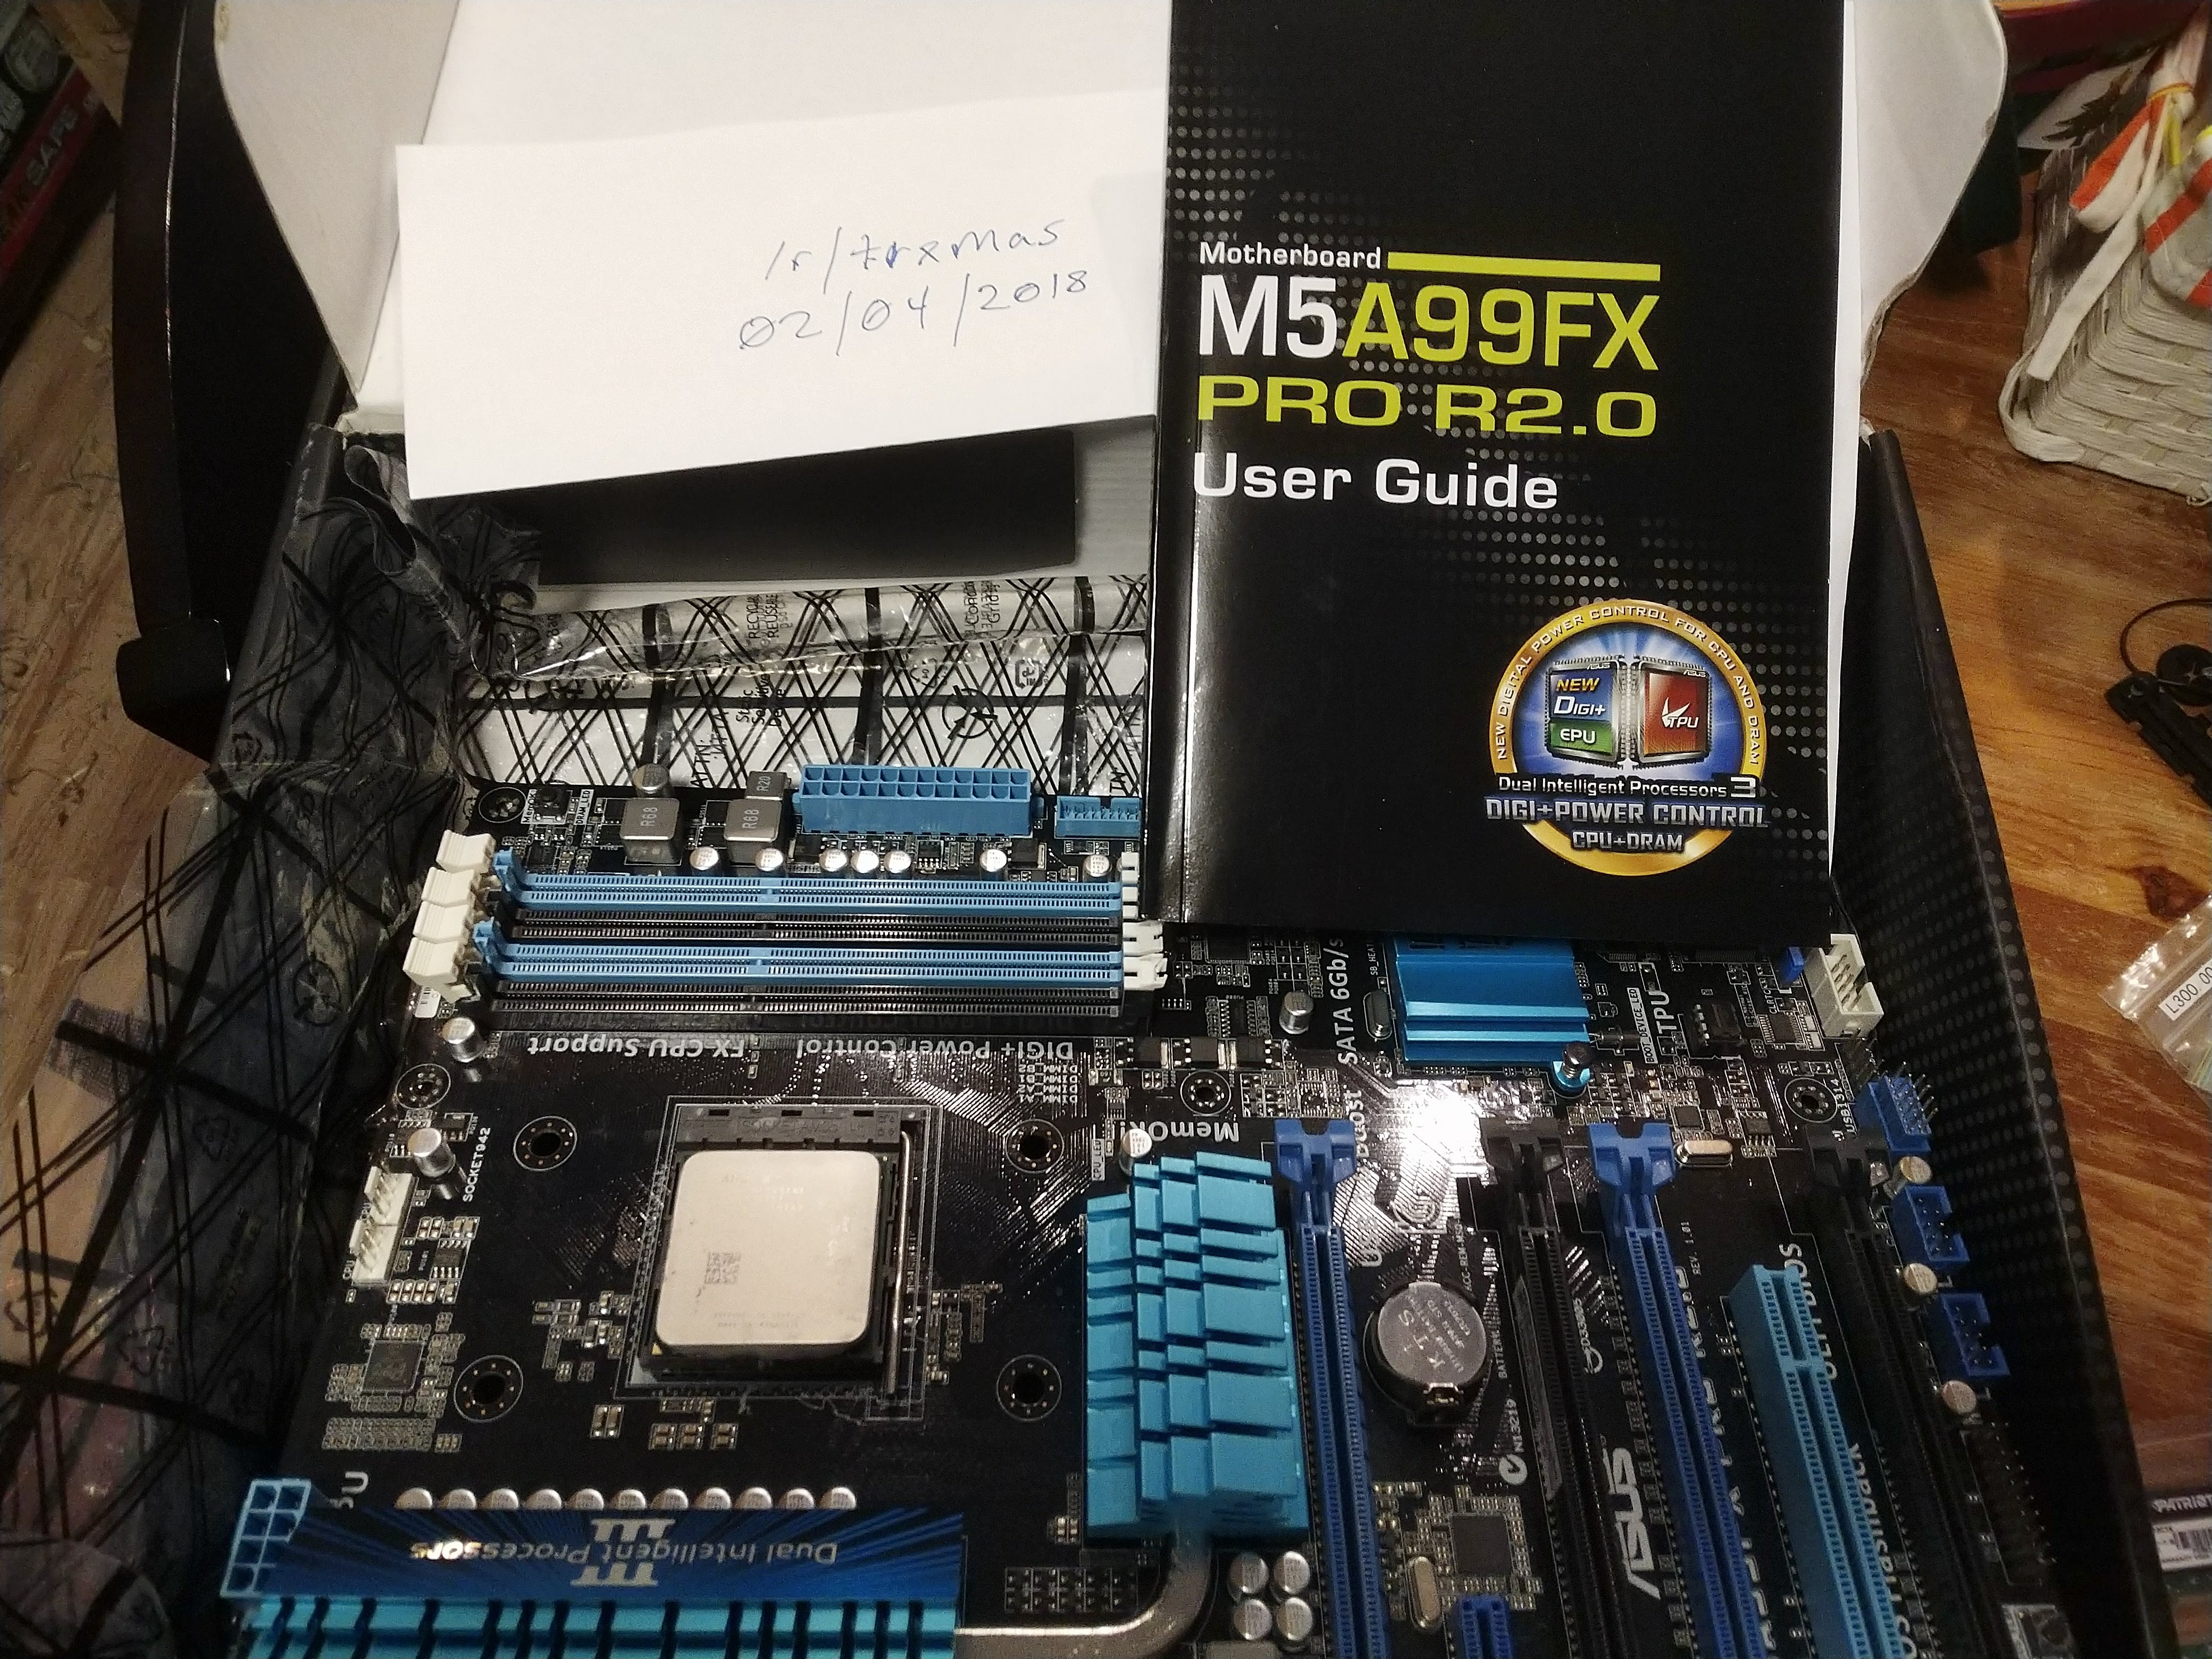 AMD FX-8320, 16GB Viper 3 DDR-2133, M5A99FX PRO R2 0 For